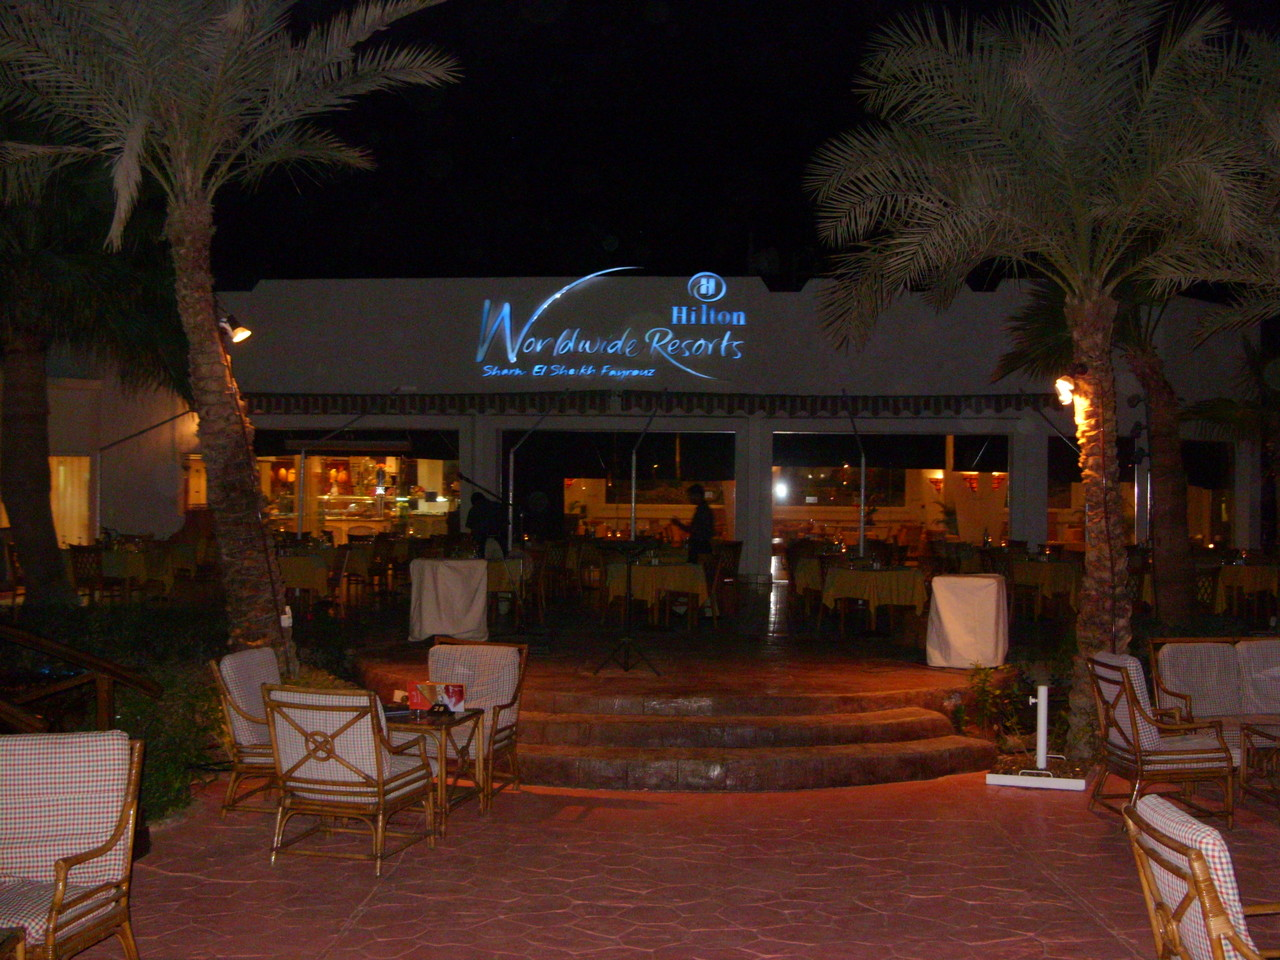 Hilton Sharm El Sheik Fayrouz Resort, Naama Bay